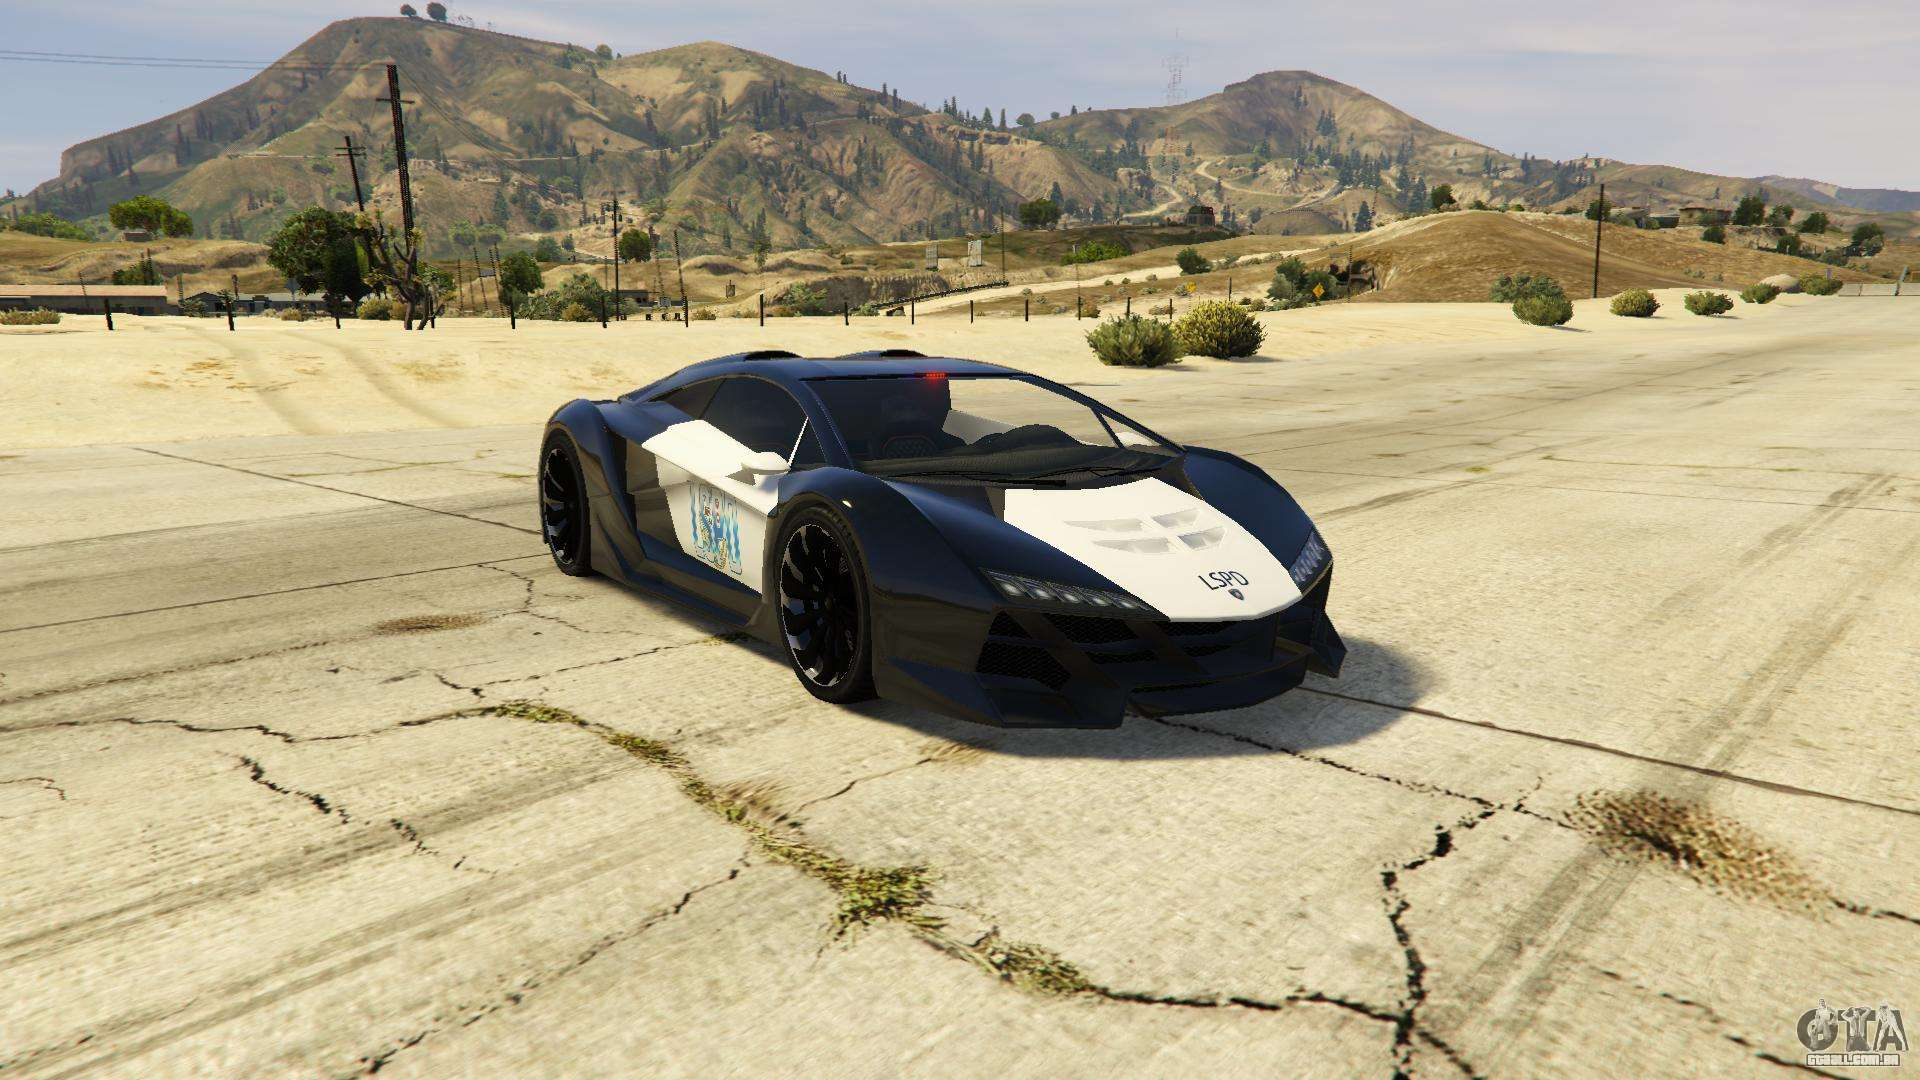 Gta V What Sports Car To Buy